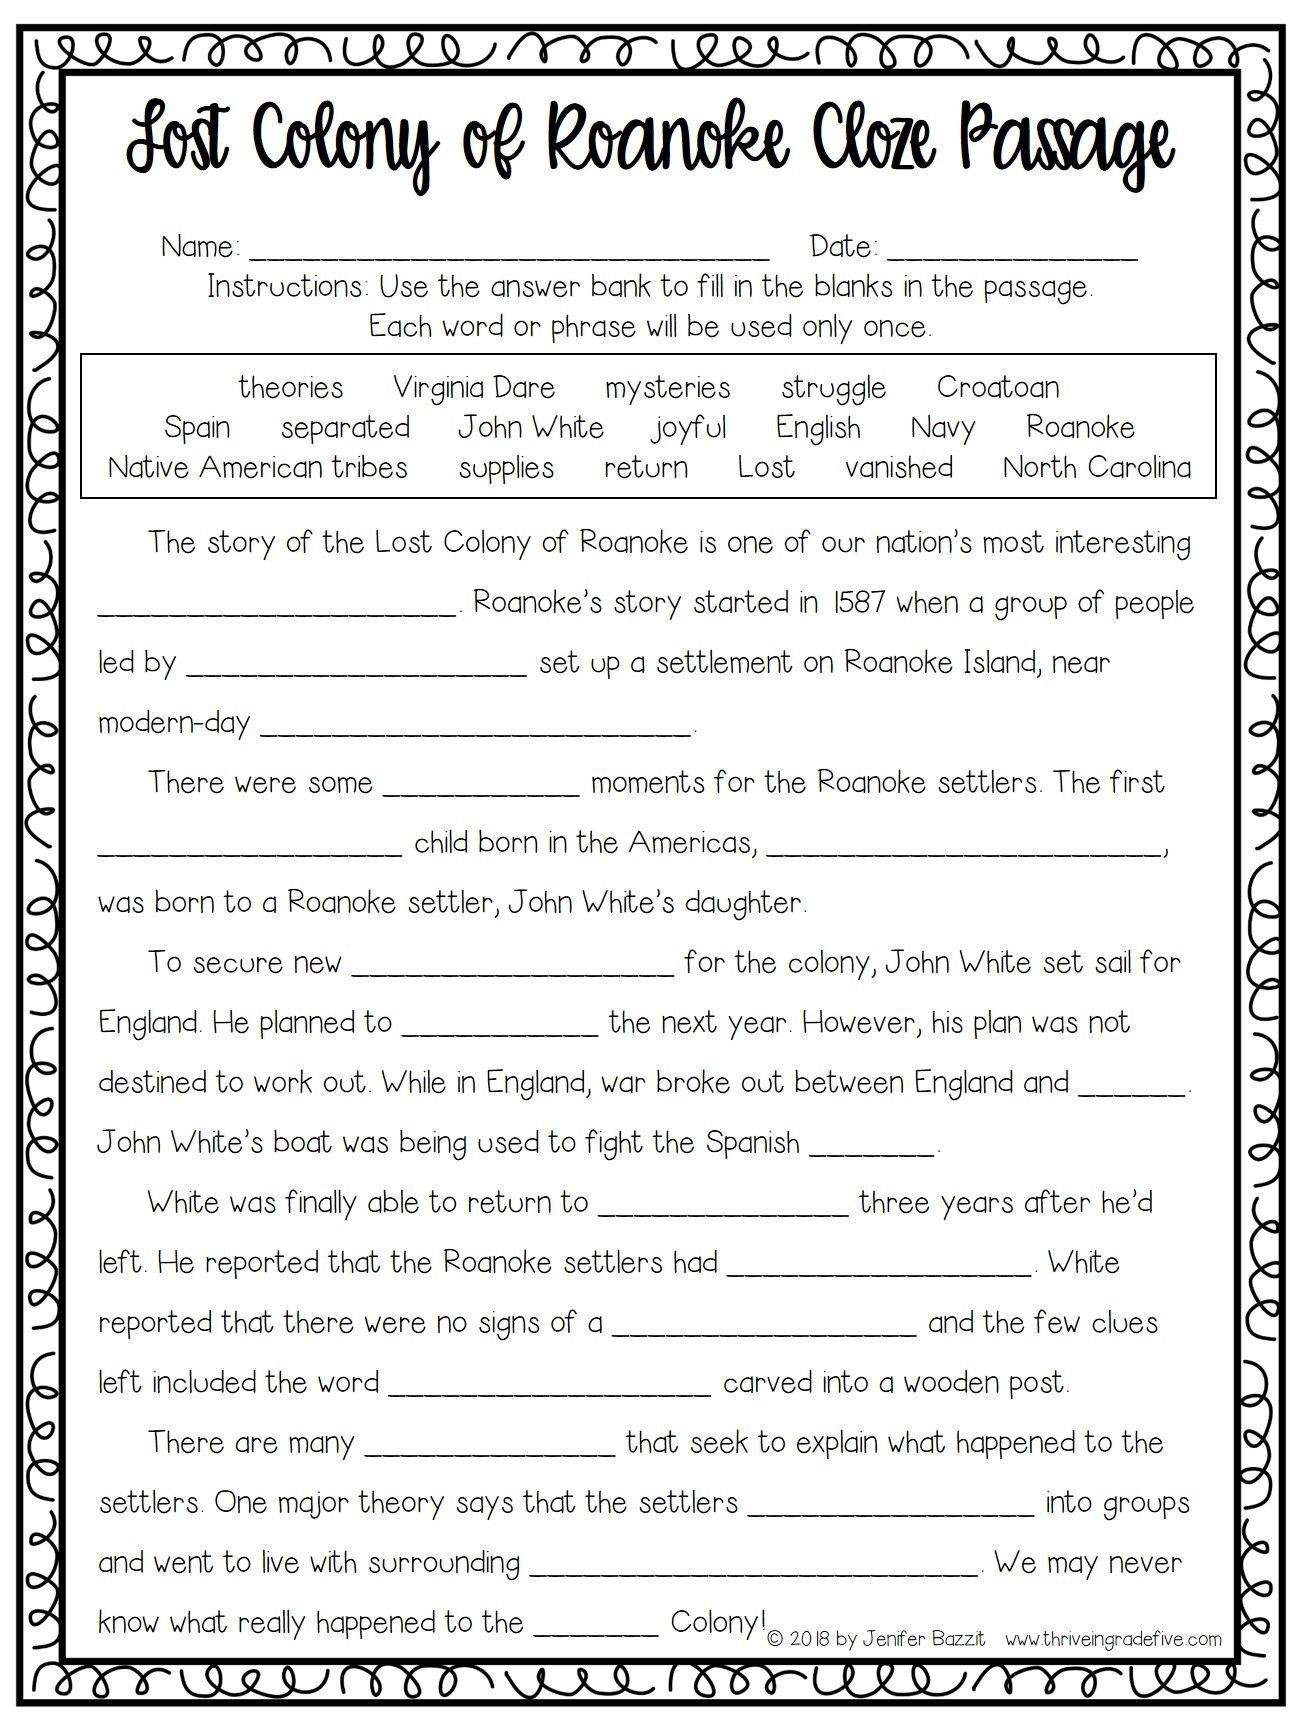 Fifth Grade social Studies Worksheets Lost Colony Of Roanoke Activity Free